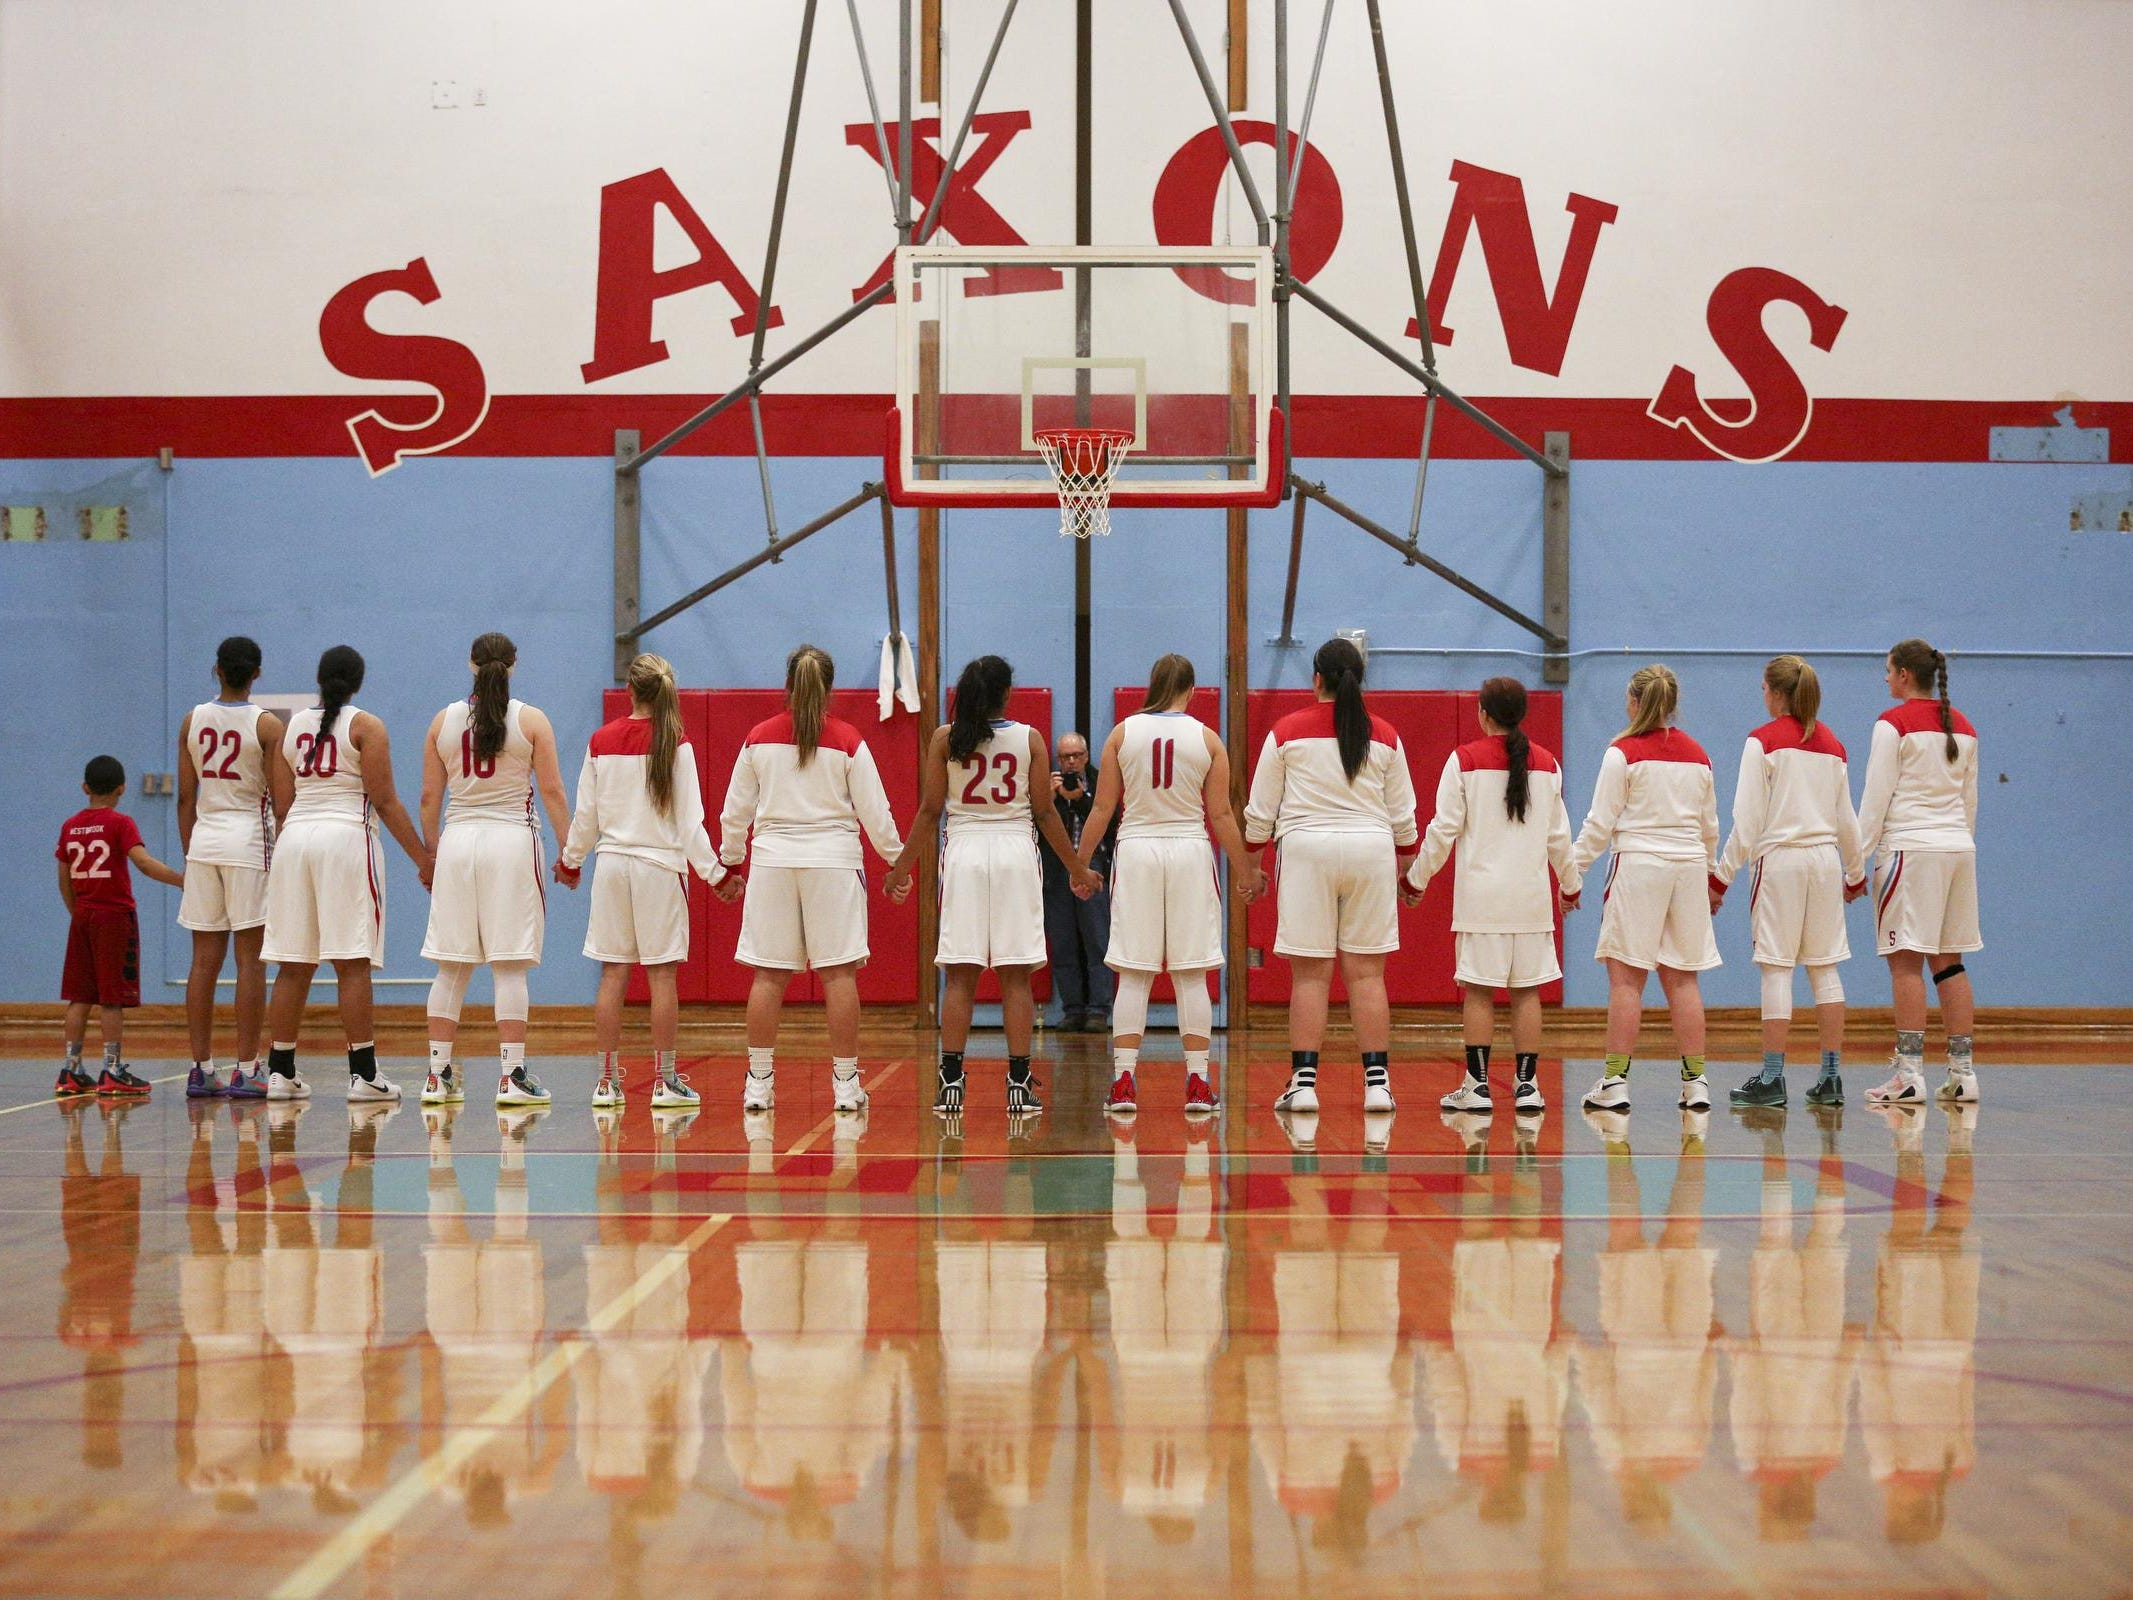 South Salem girls basketball stands together for the national anthem before they face the McMinnville Grizzlies in Salem on Friday, Jan. 8, 2016.